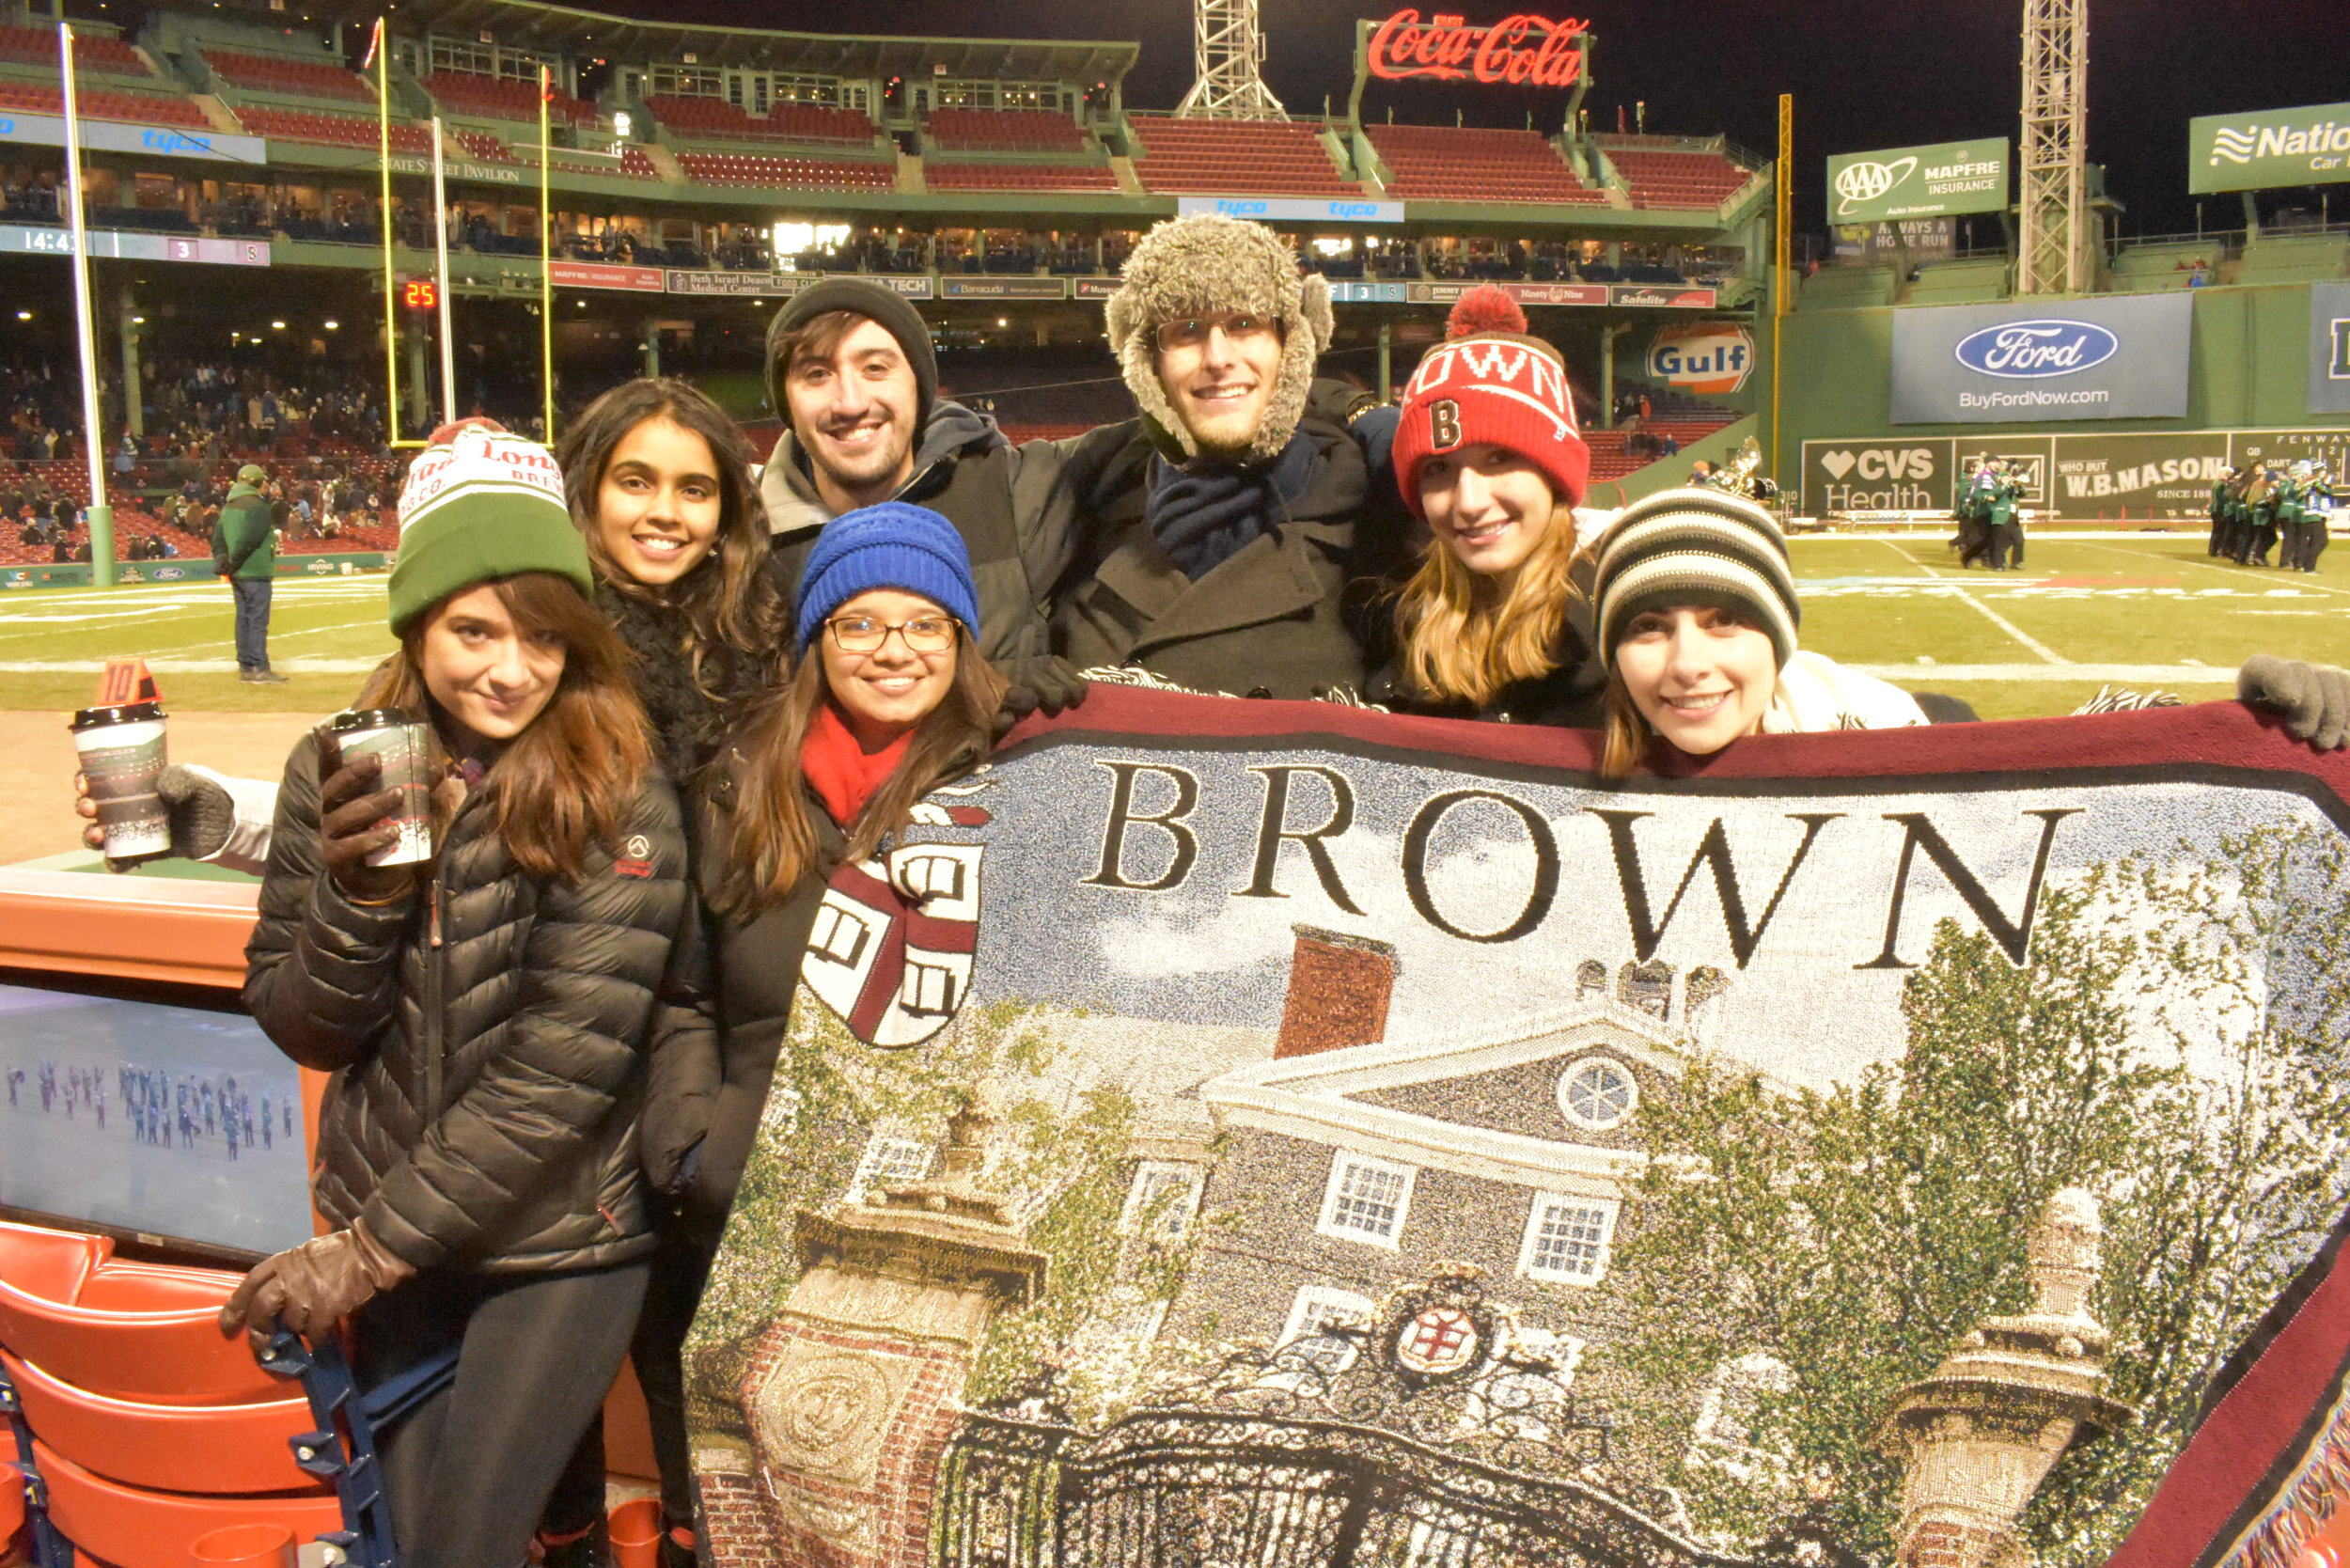 One of the perks of being a grad student at Brown is the amazing colleagues and friends you make. This is one inspirational group!